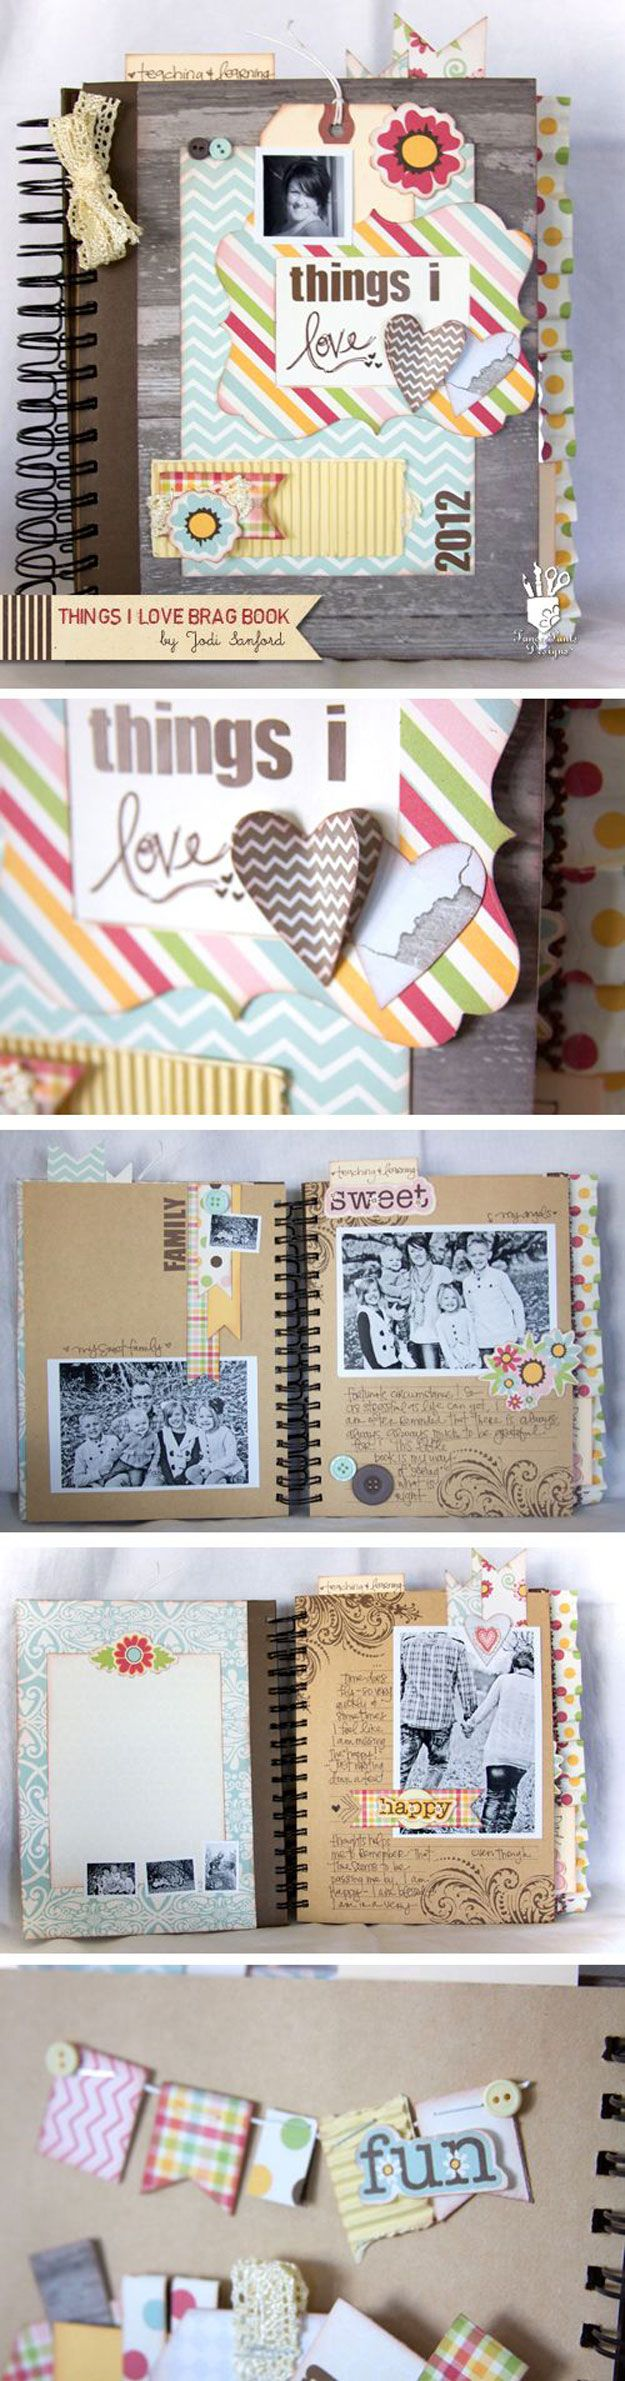 Scrapbook Ideas for Beginners | The Things I Love Scrapbook by DIY Ready at diyr…